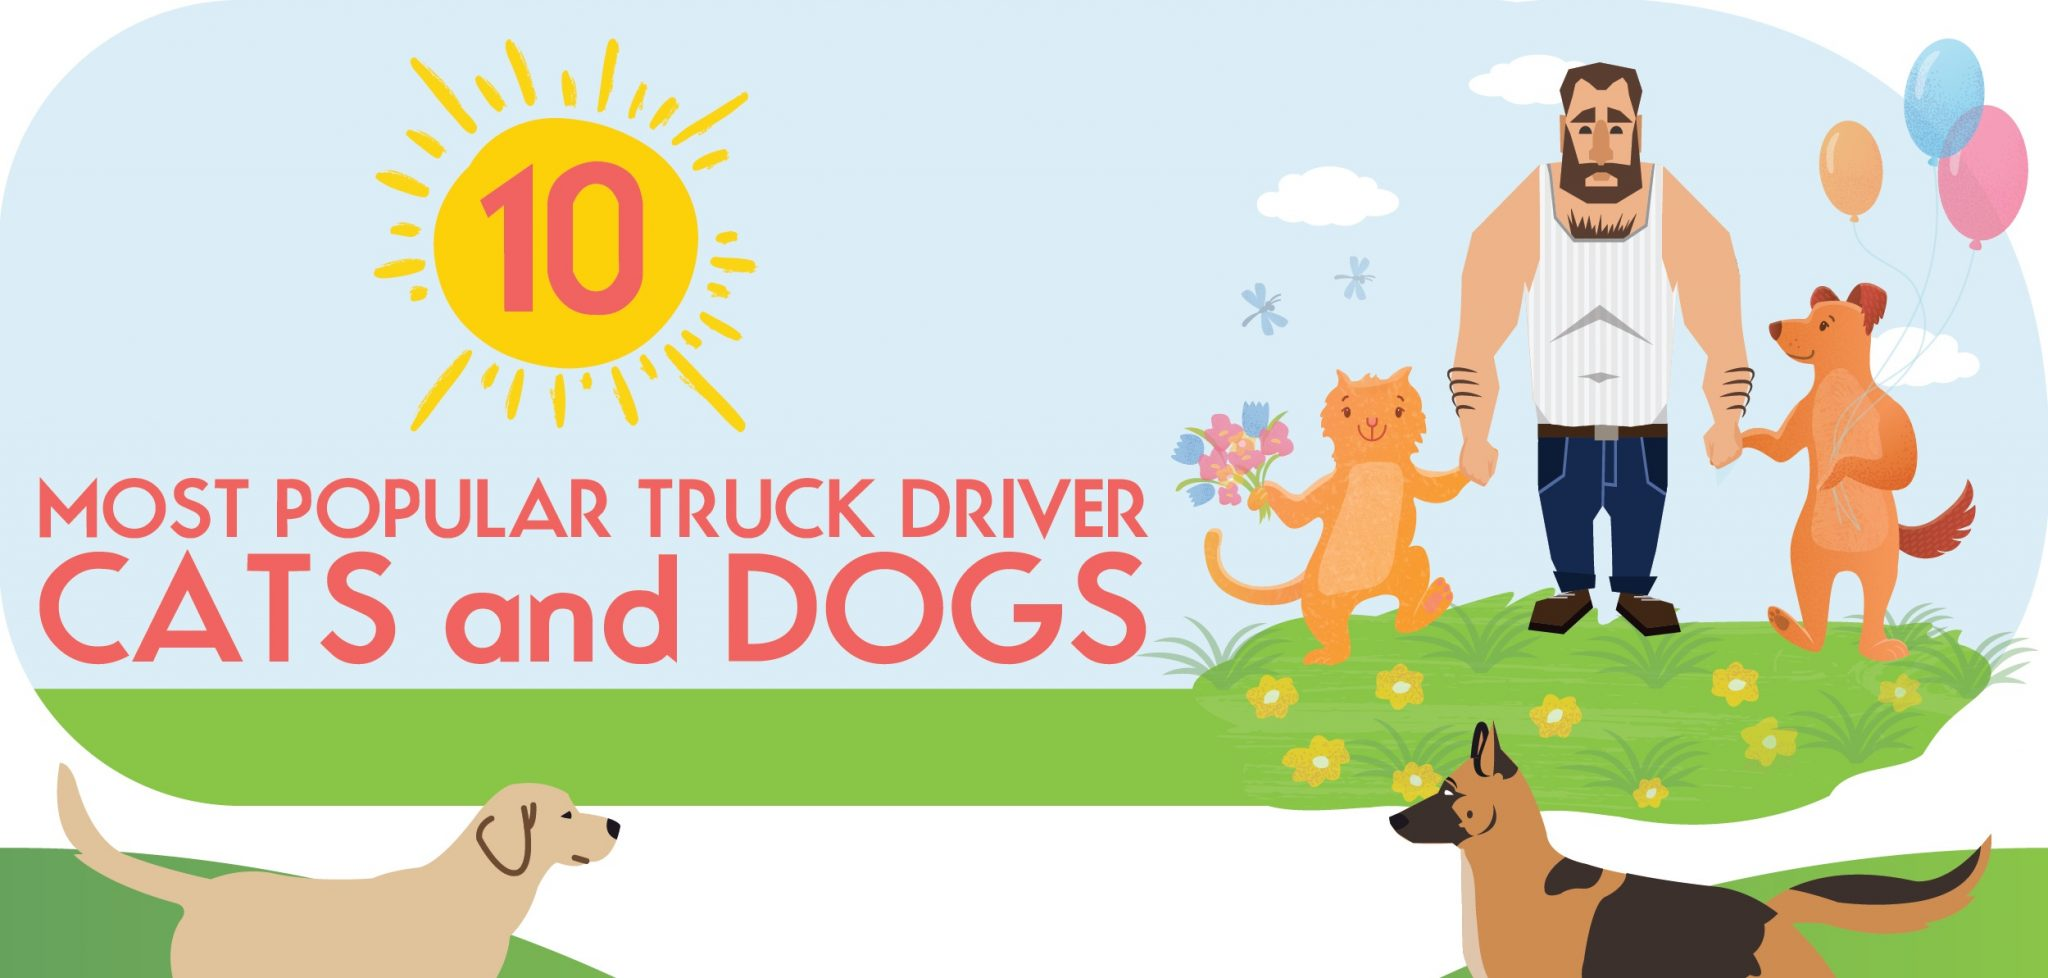 INFOGRAPHIC: 10 Most Popular Truck Driver Cats and Dogs